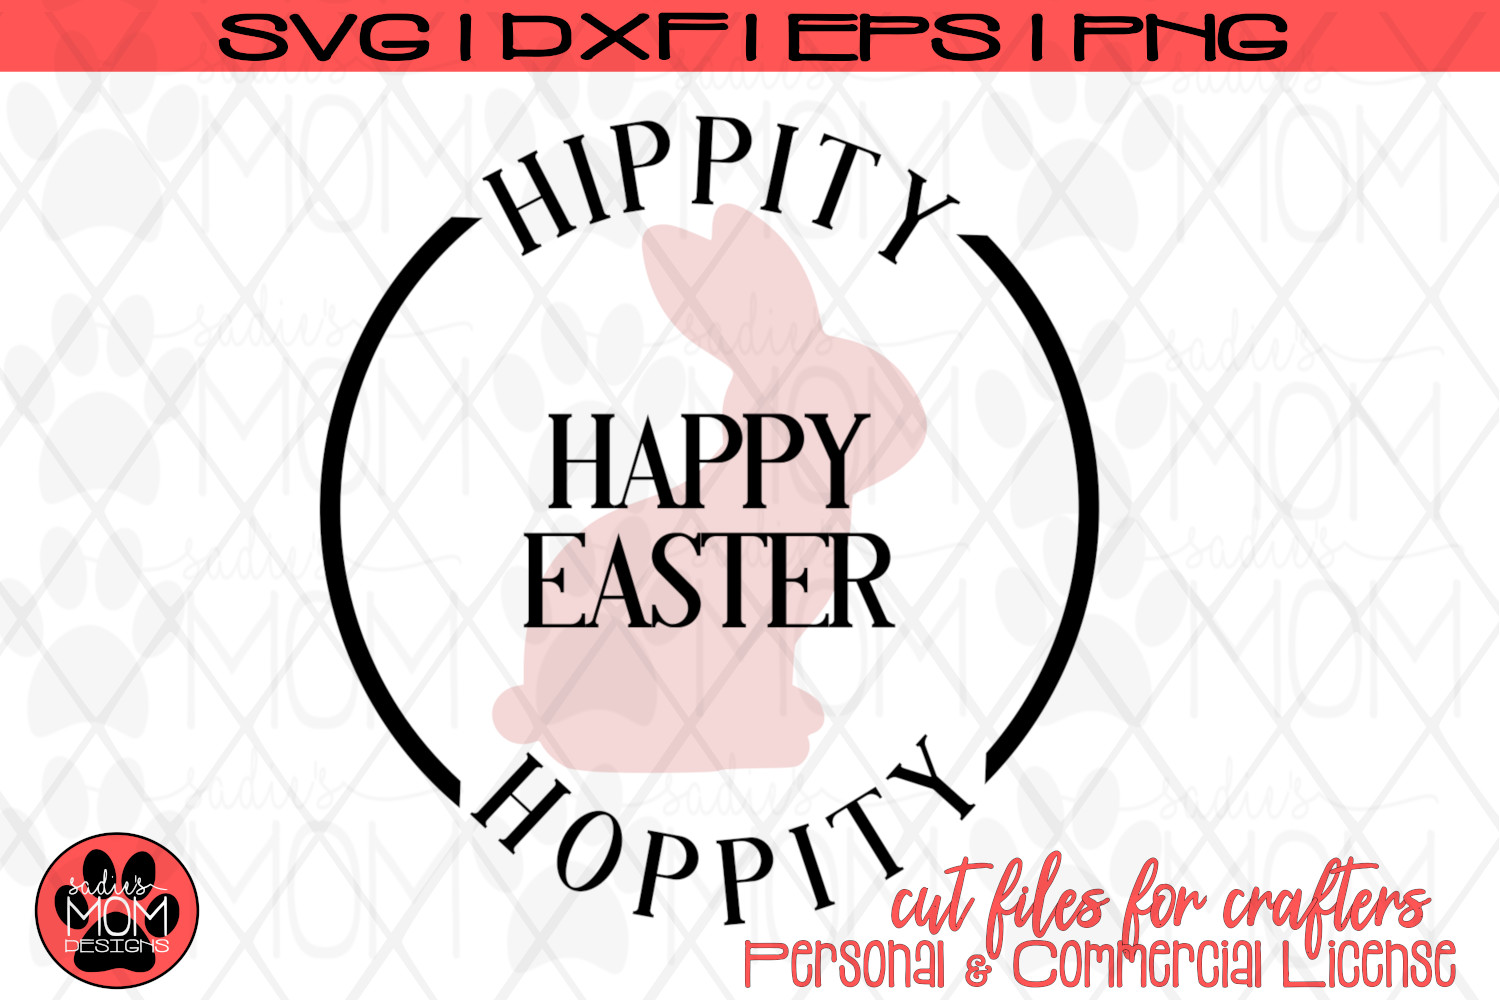 Hippity Hoppity Happy Easter | Bunny SVG Cut File example image 2